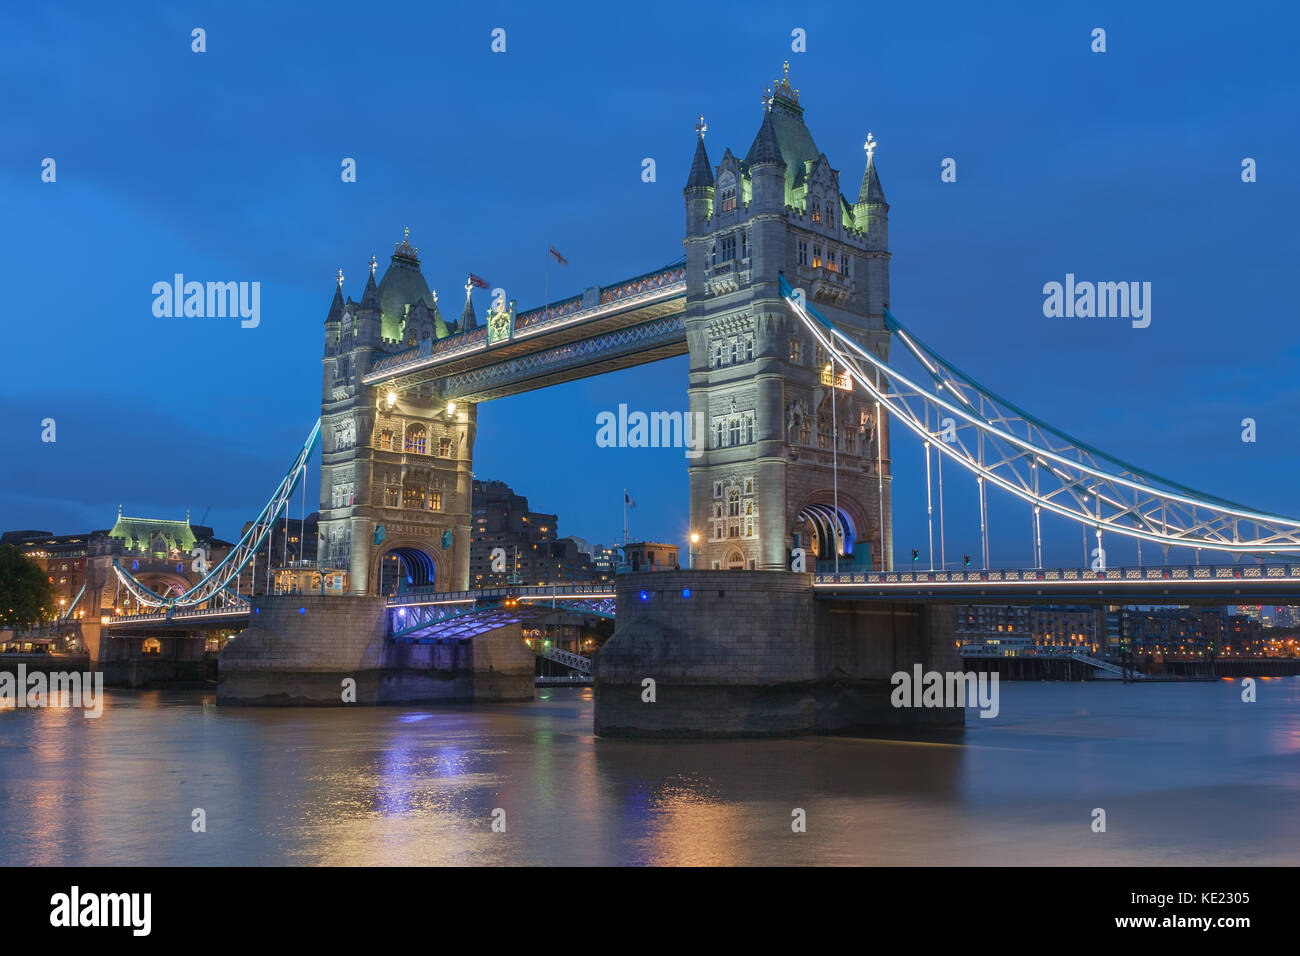 Tower Bridge in the evening, London, England. - Stock Image